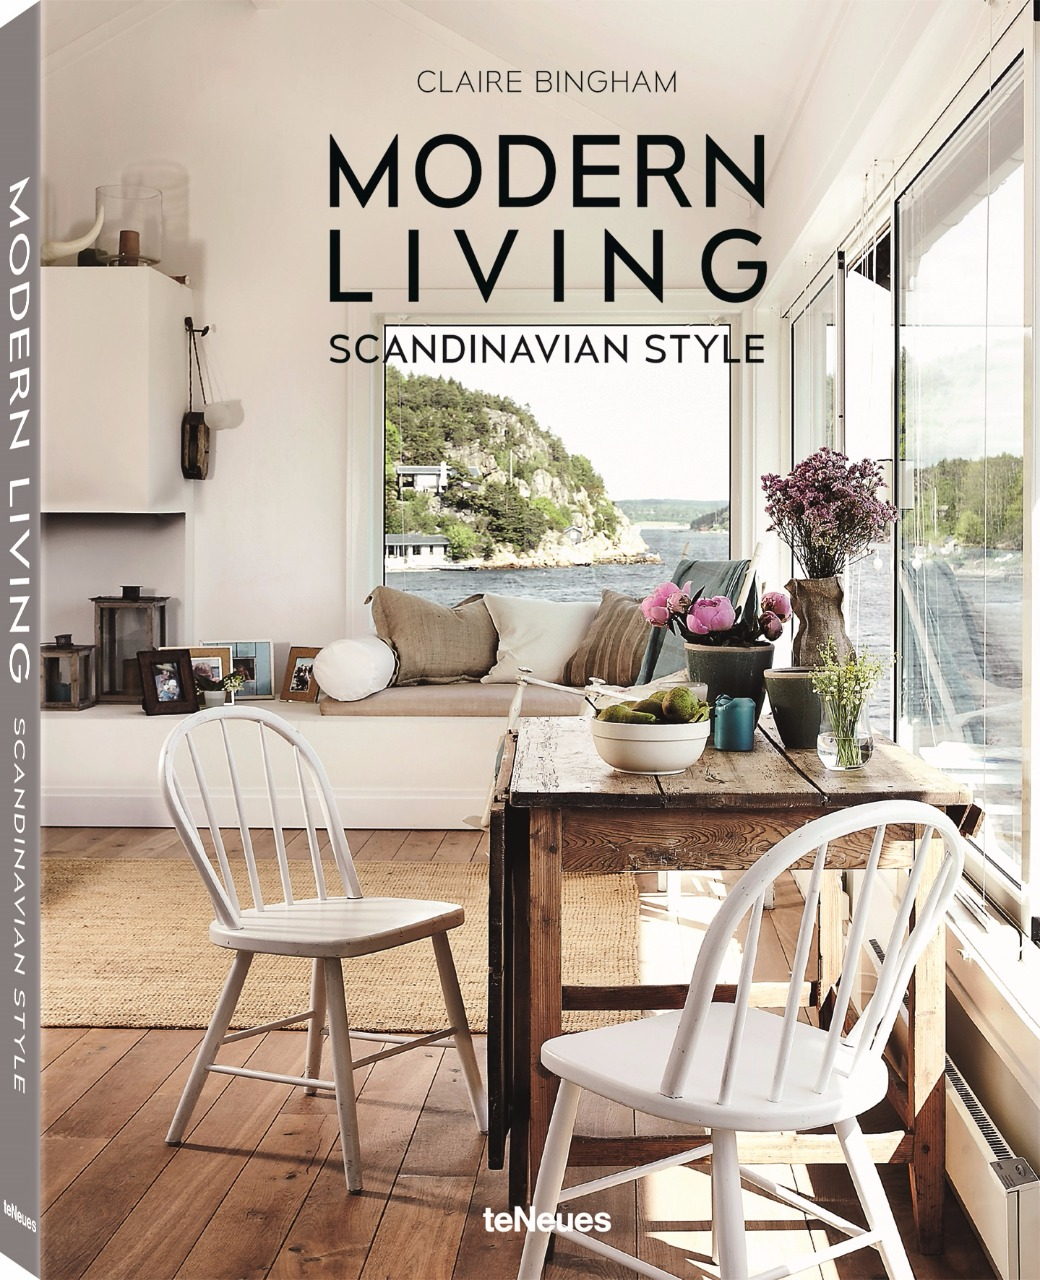 Modern Living Scandinavian Style, ISBN: 9783832734183 - available ...